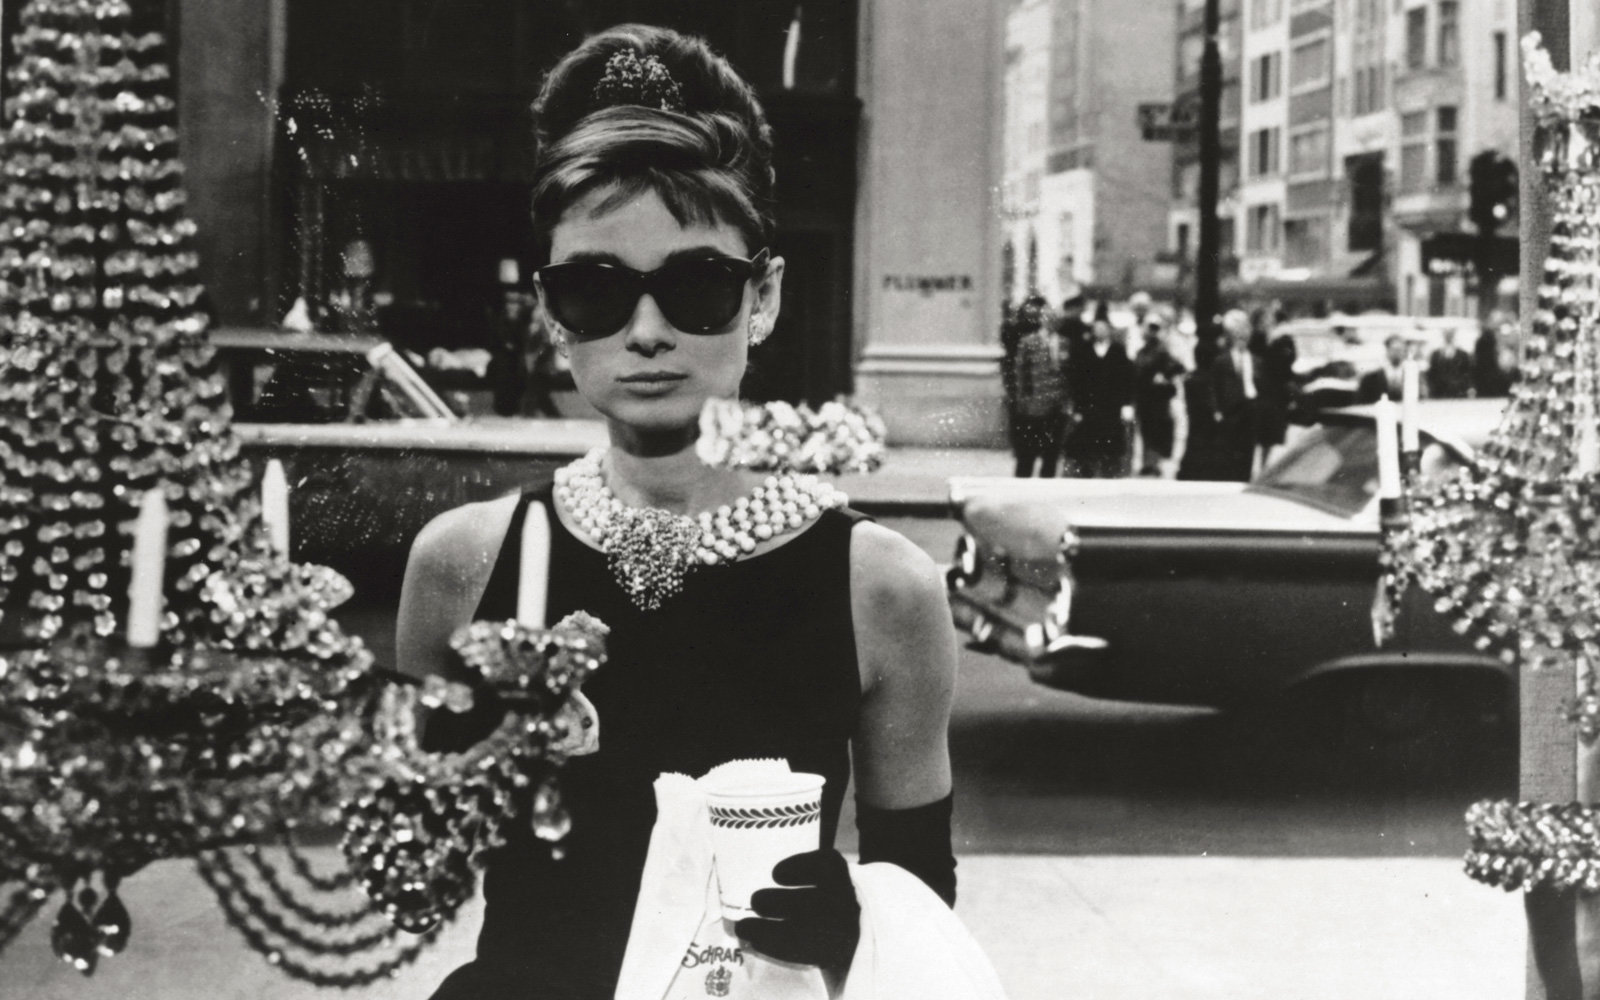 You can now have BREAKFAST at Tiffany's, and we're booking a flight